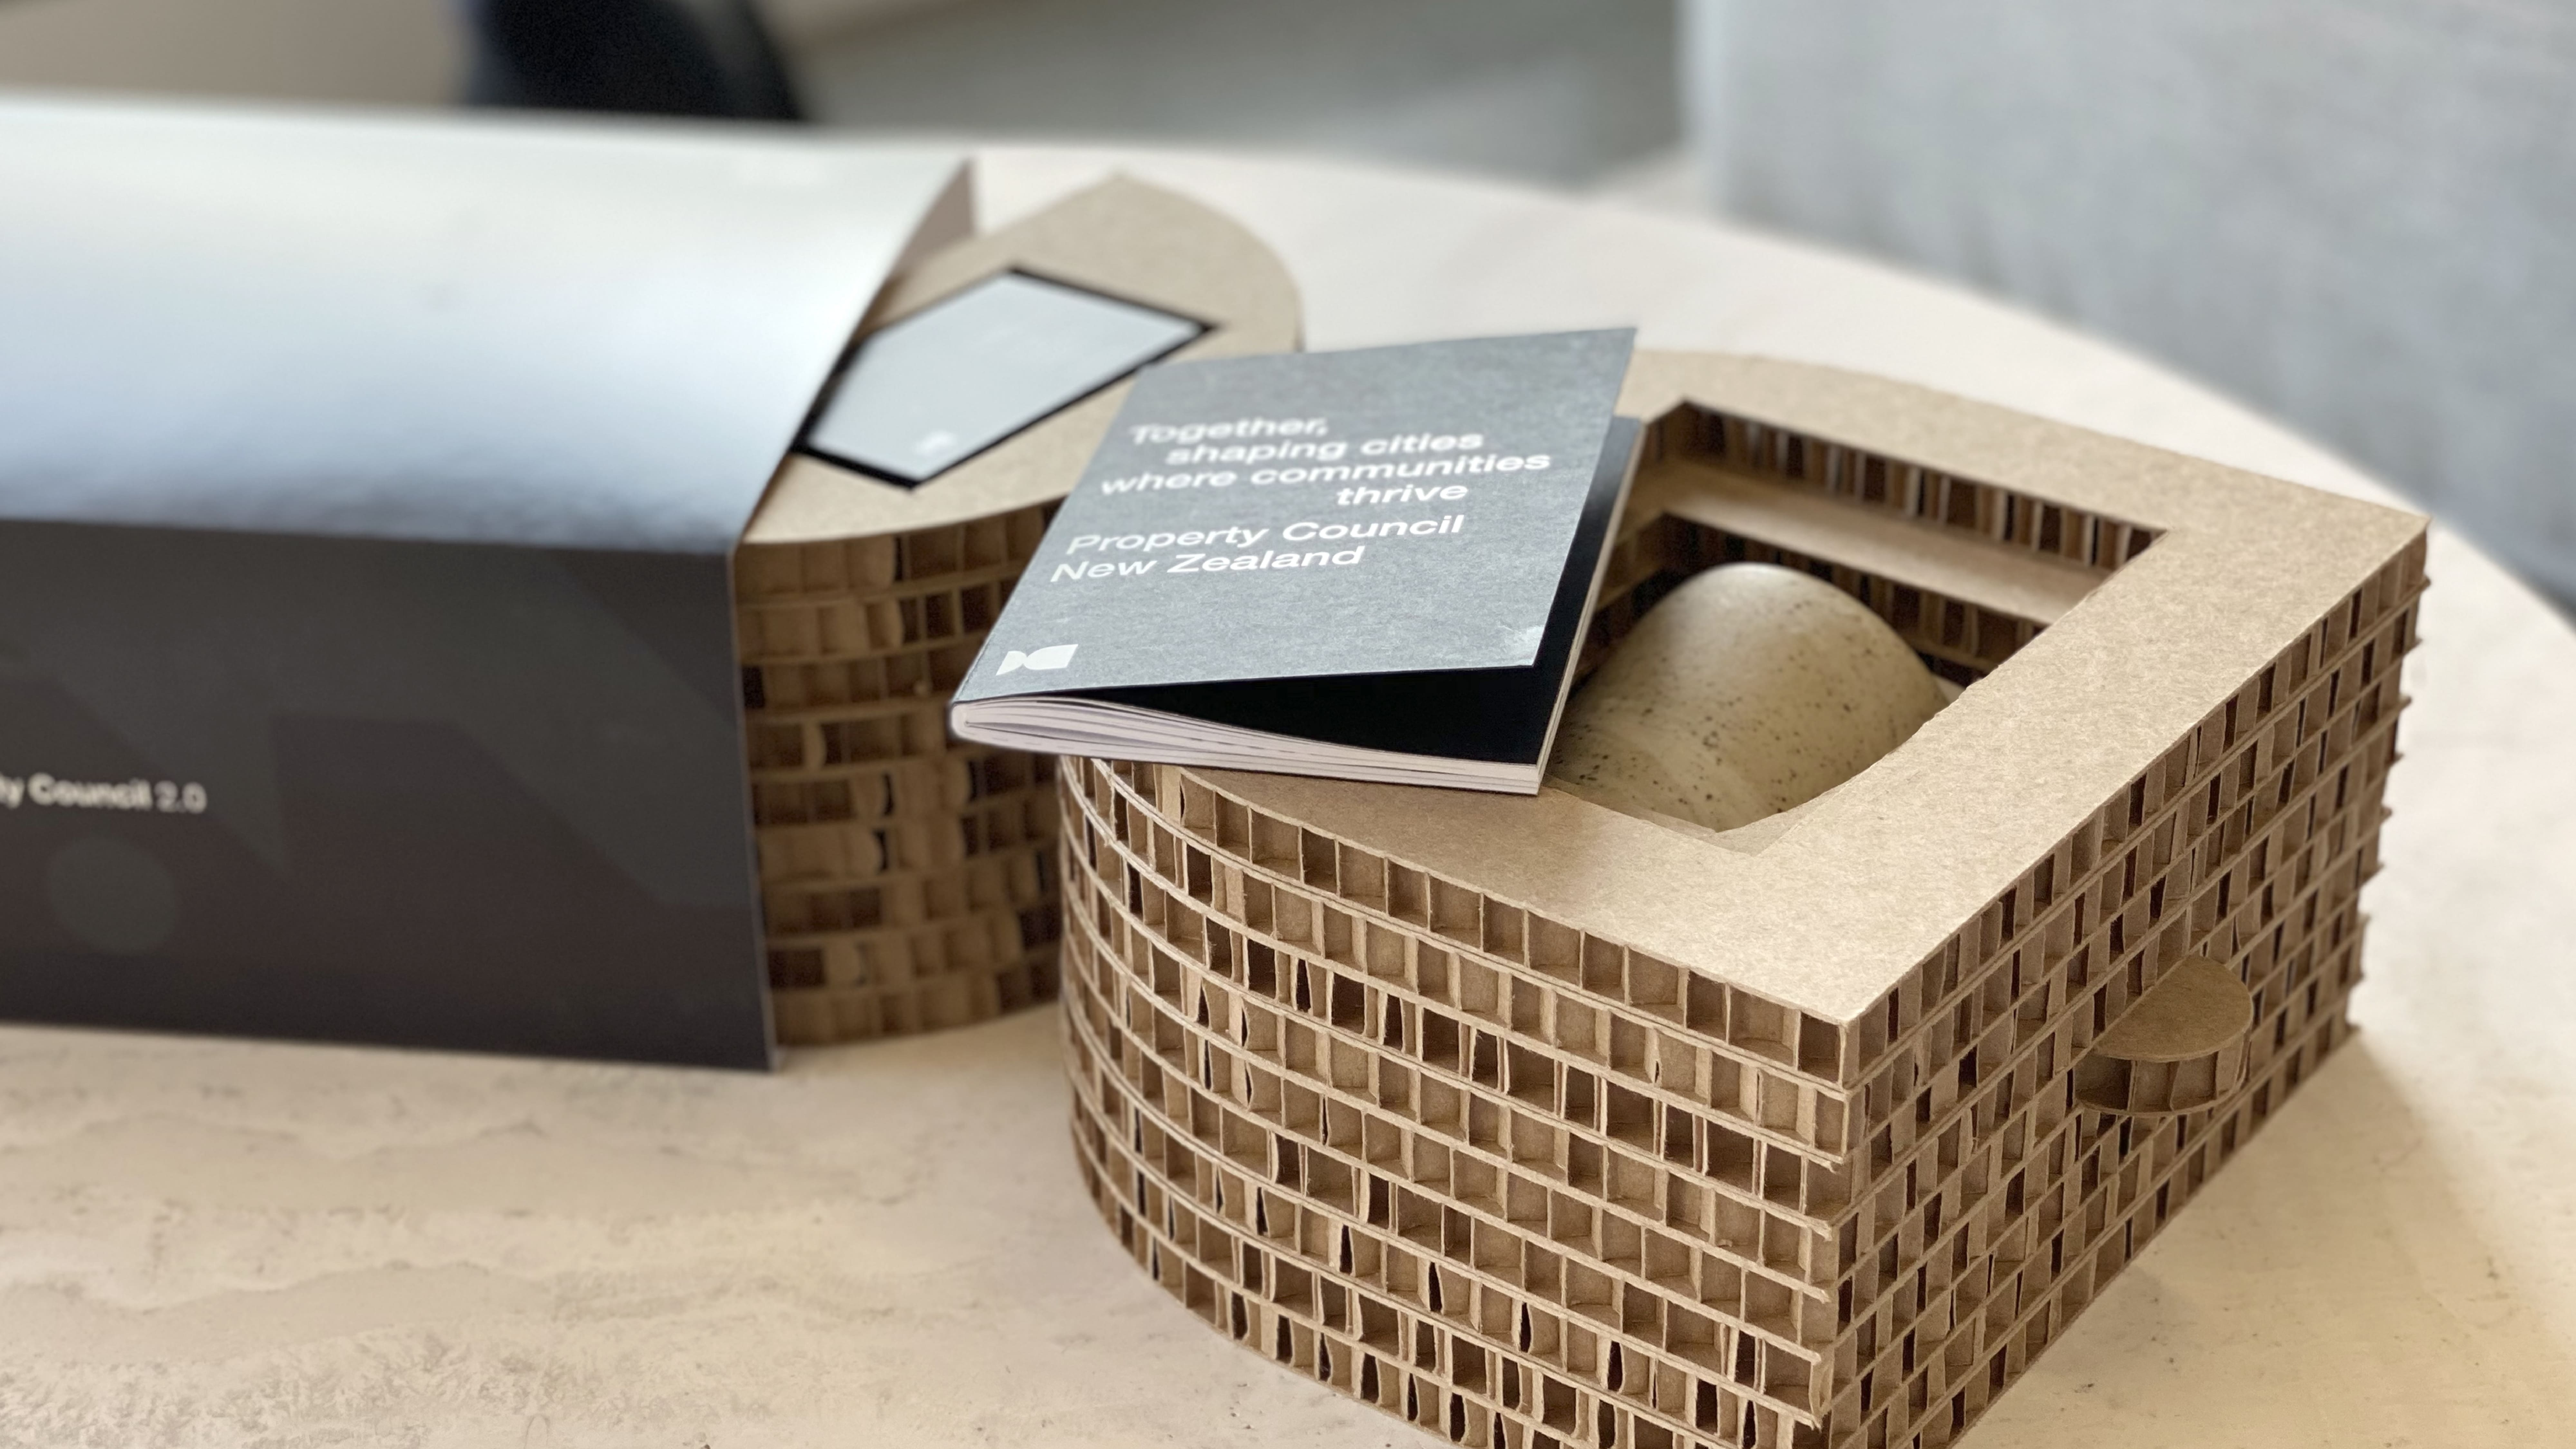 attraction studio pcnz brand environmental packaging on table